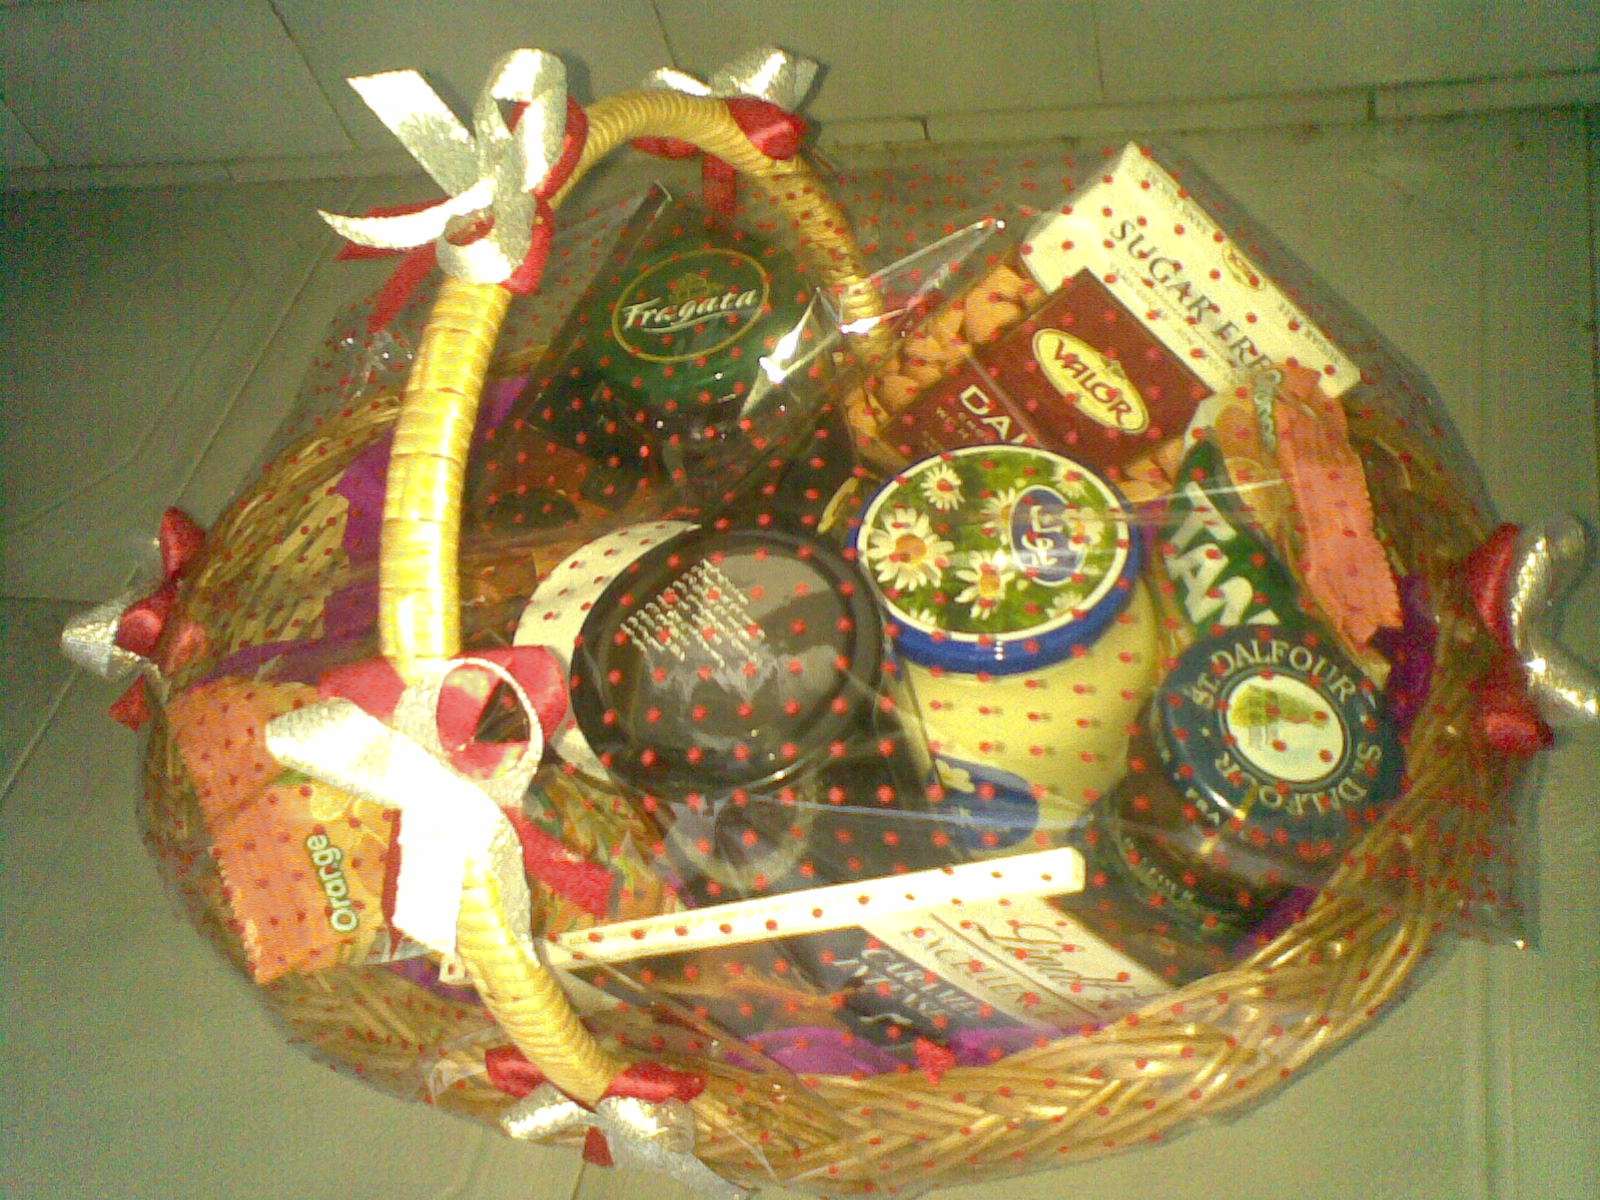 diwali gift Diwali is the most important festival for the hindus don't miss this last-minute guide to good gifting for diwali.